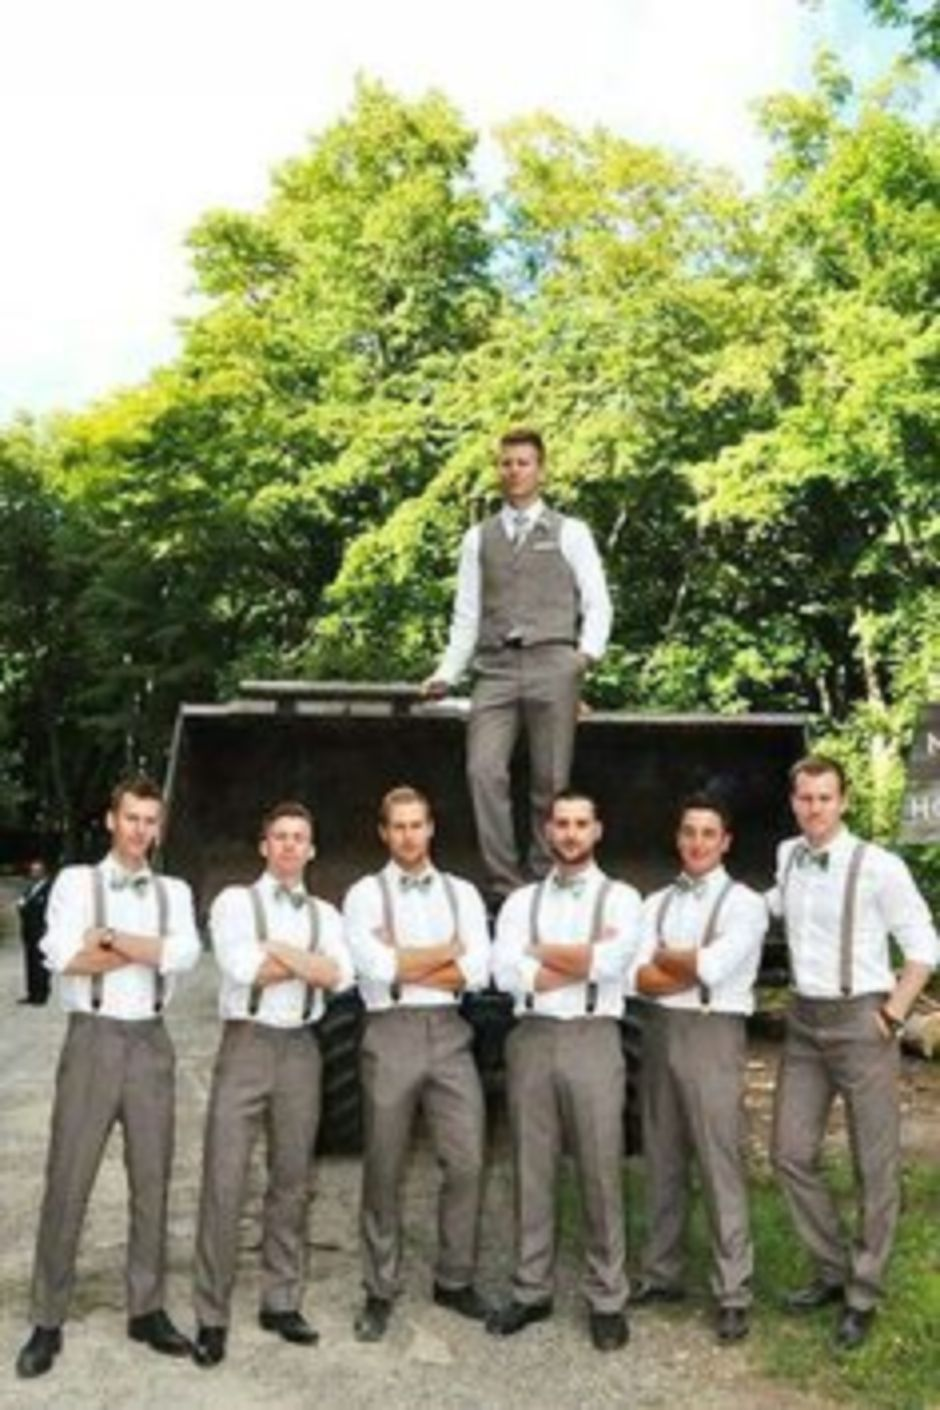 100+ Groomsmen Photos Poses Ideas You Can't Miss 104